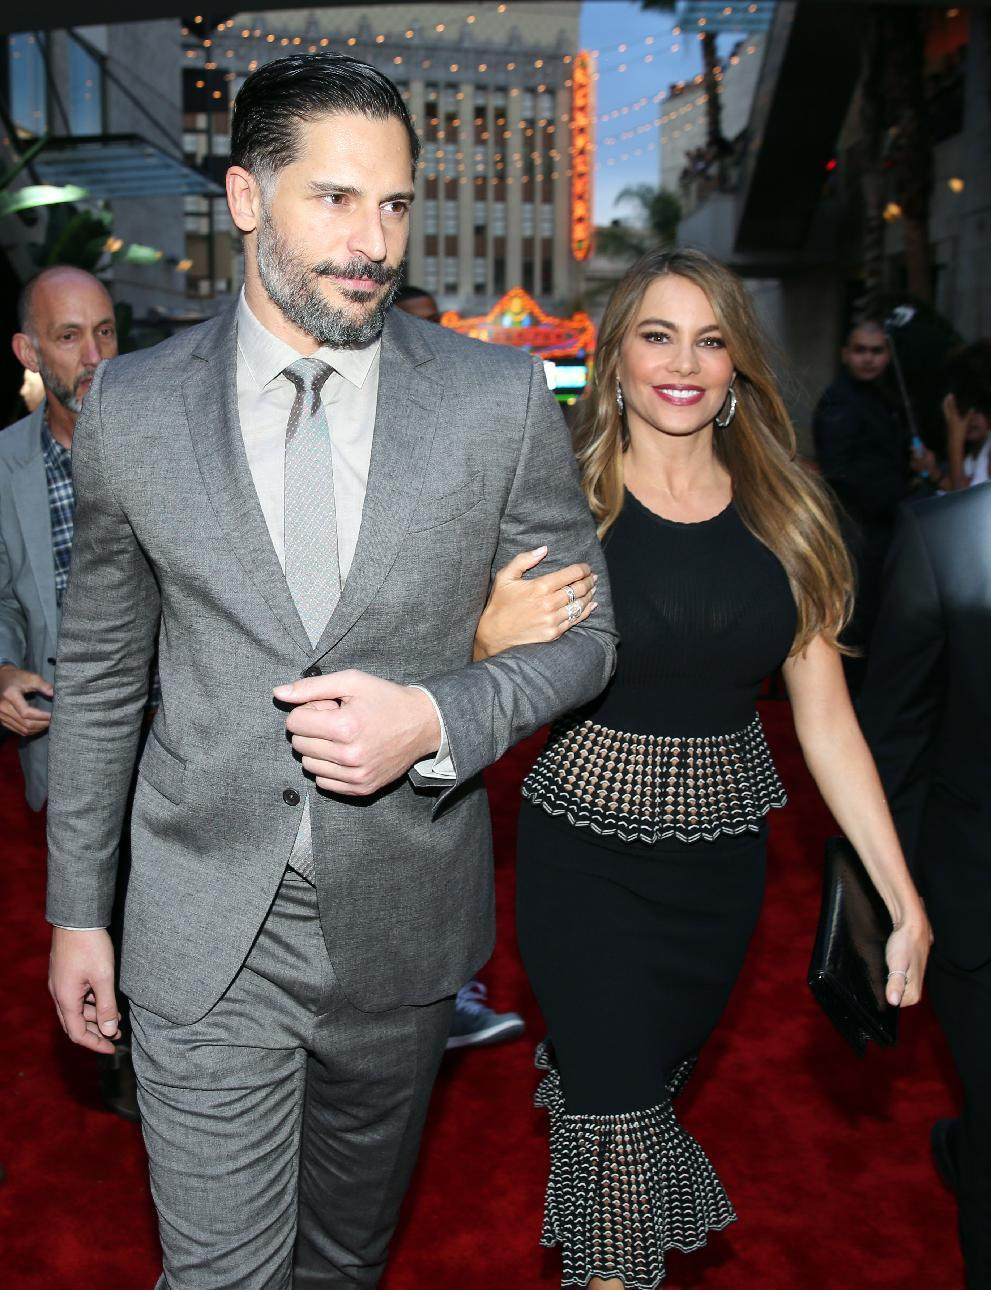 Sofia Vergara scores by sharing wedding photos on Instagram